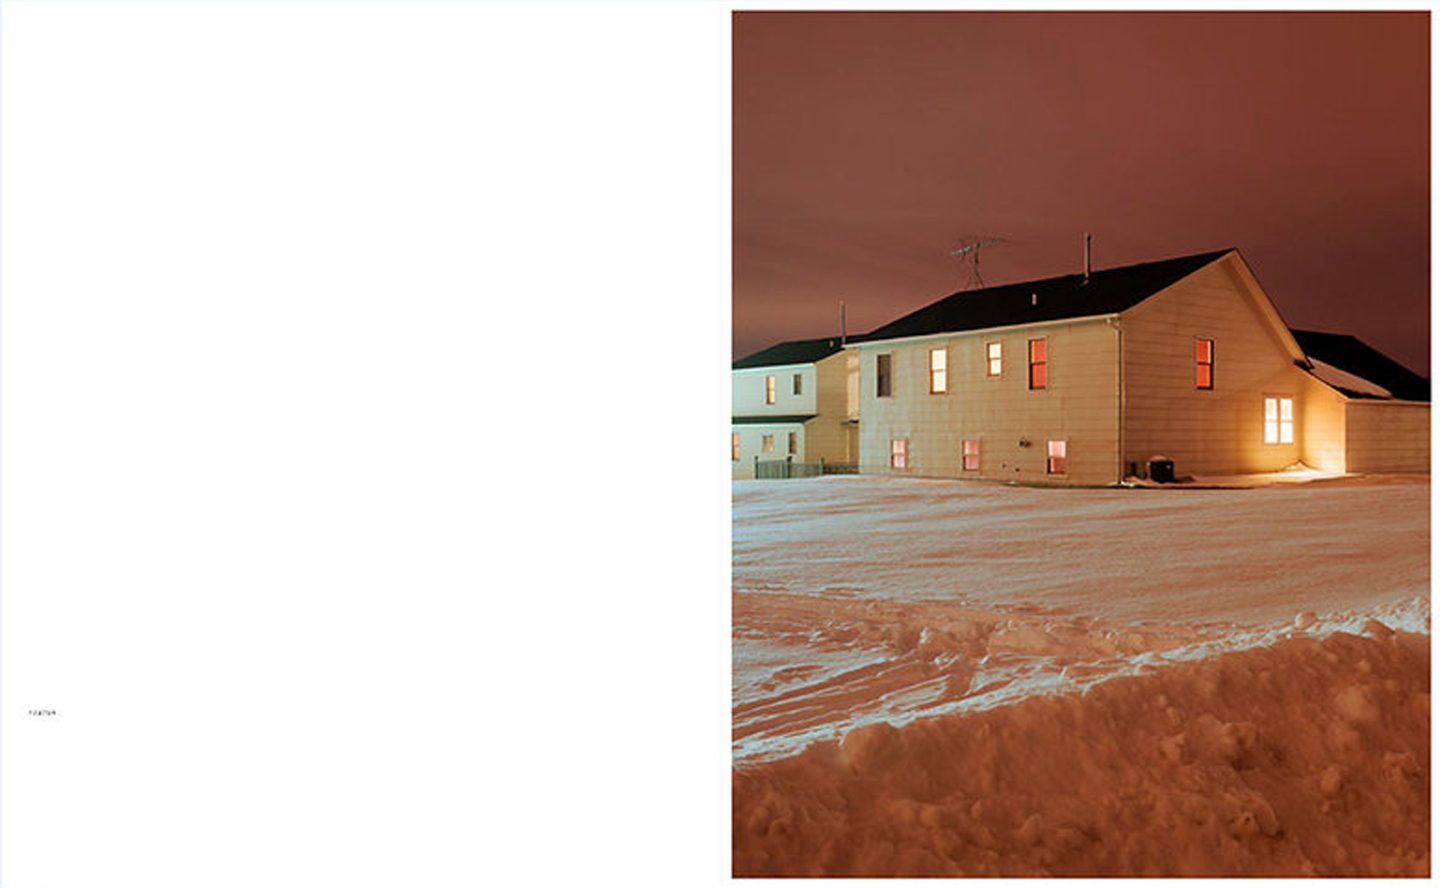 Todd Hido: House Hunting (Remastered Third Edition), Deluxe Limited Edition of 25 (with Print) [SIGNED]